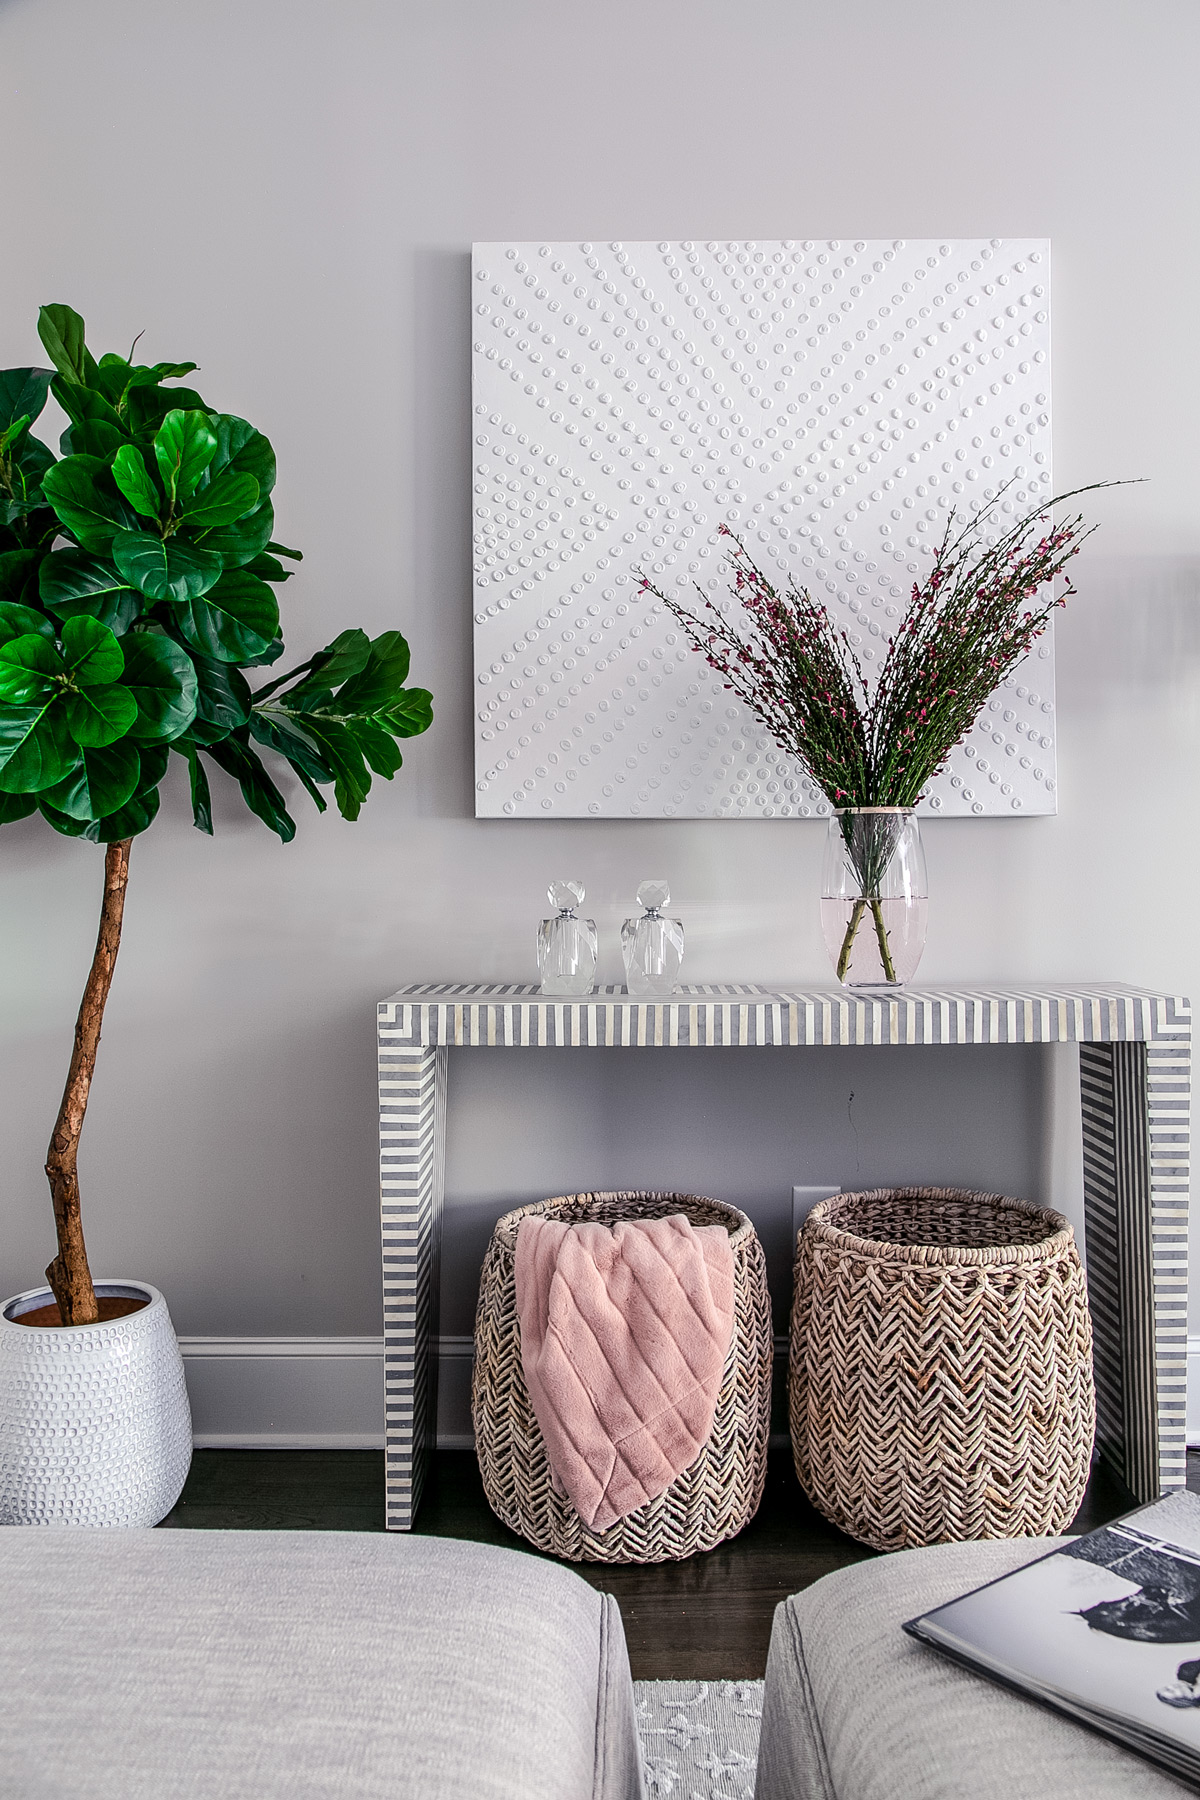 Wicker baskets and plants in master bedroom